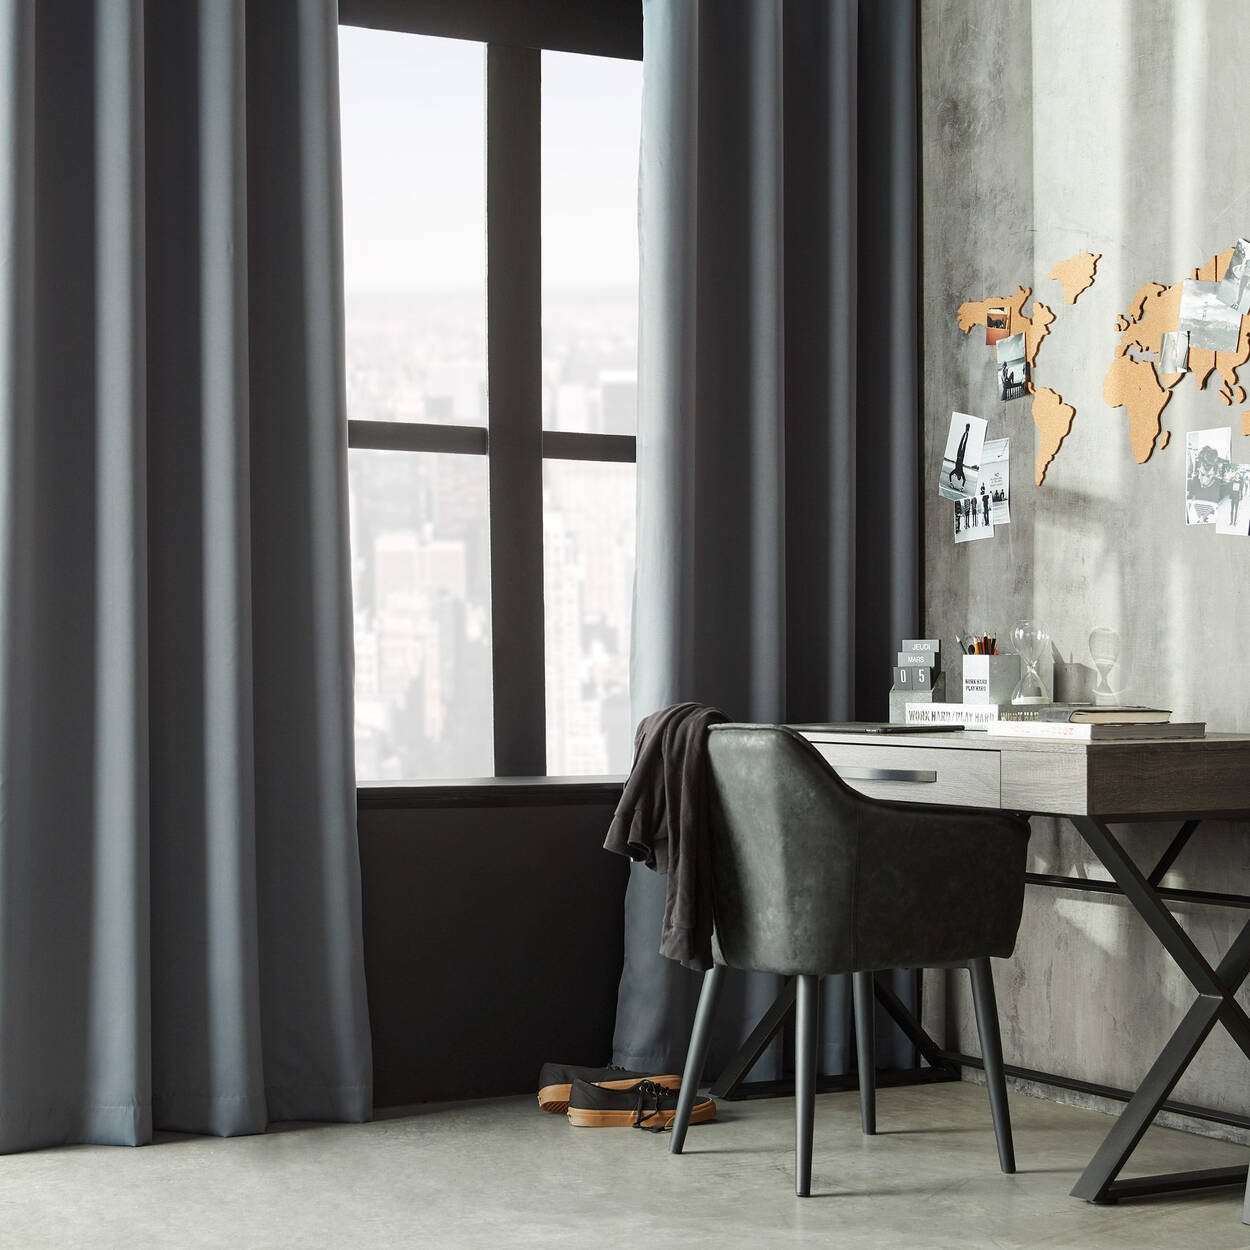 These Energy Efficient Curtains Make Any Room More Comfortable And Sleep Friendly